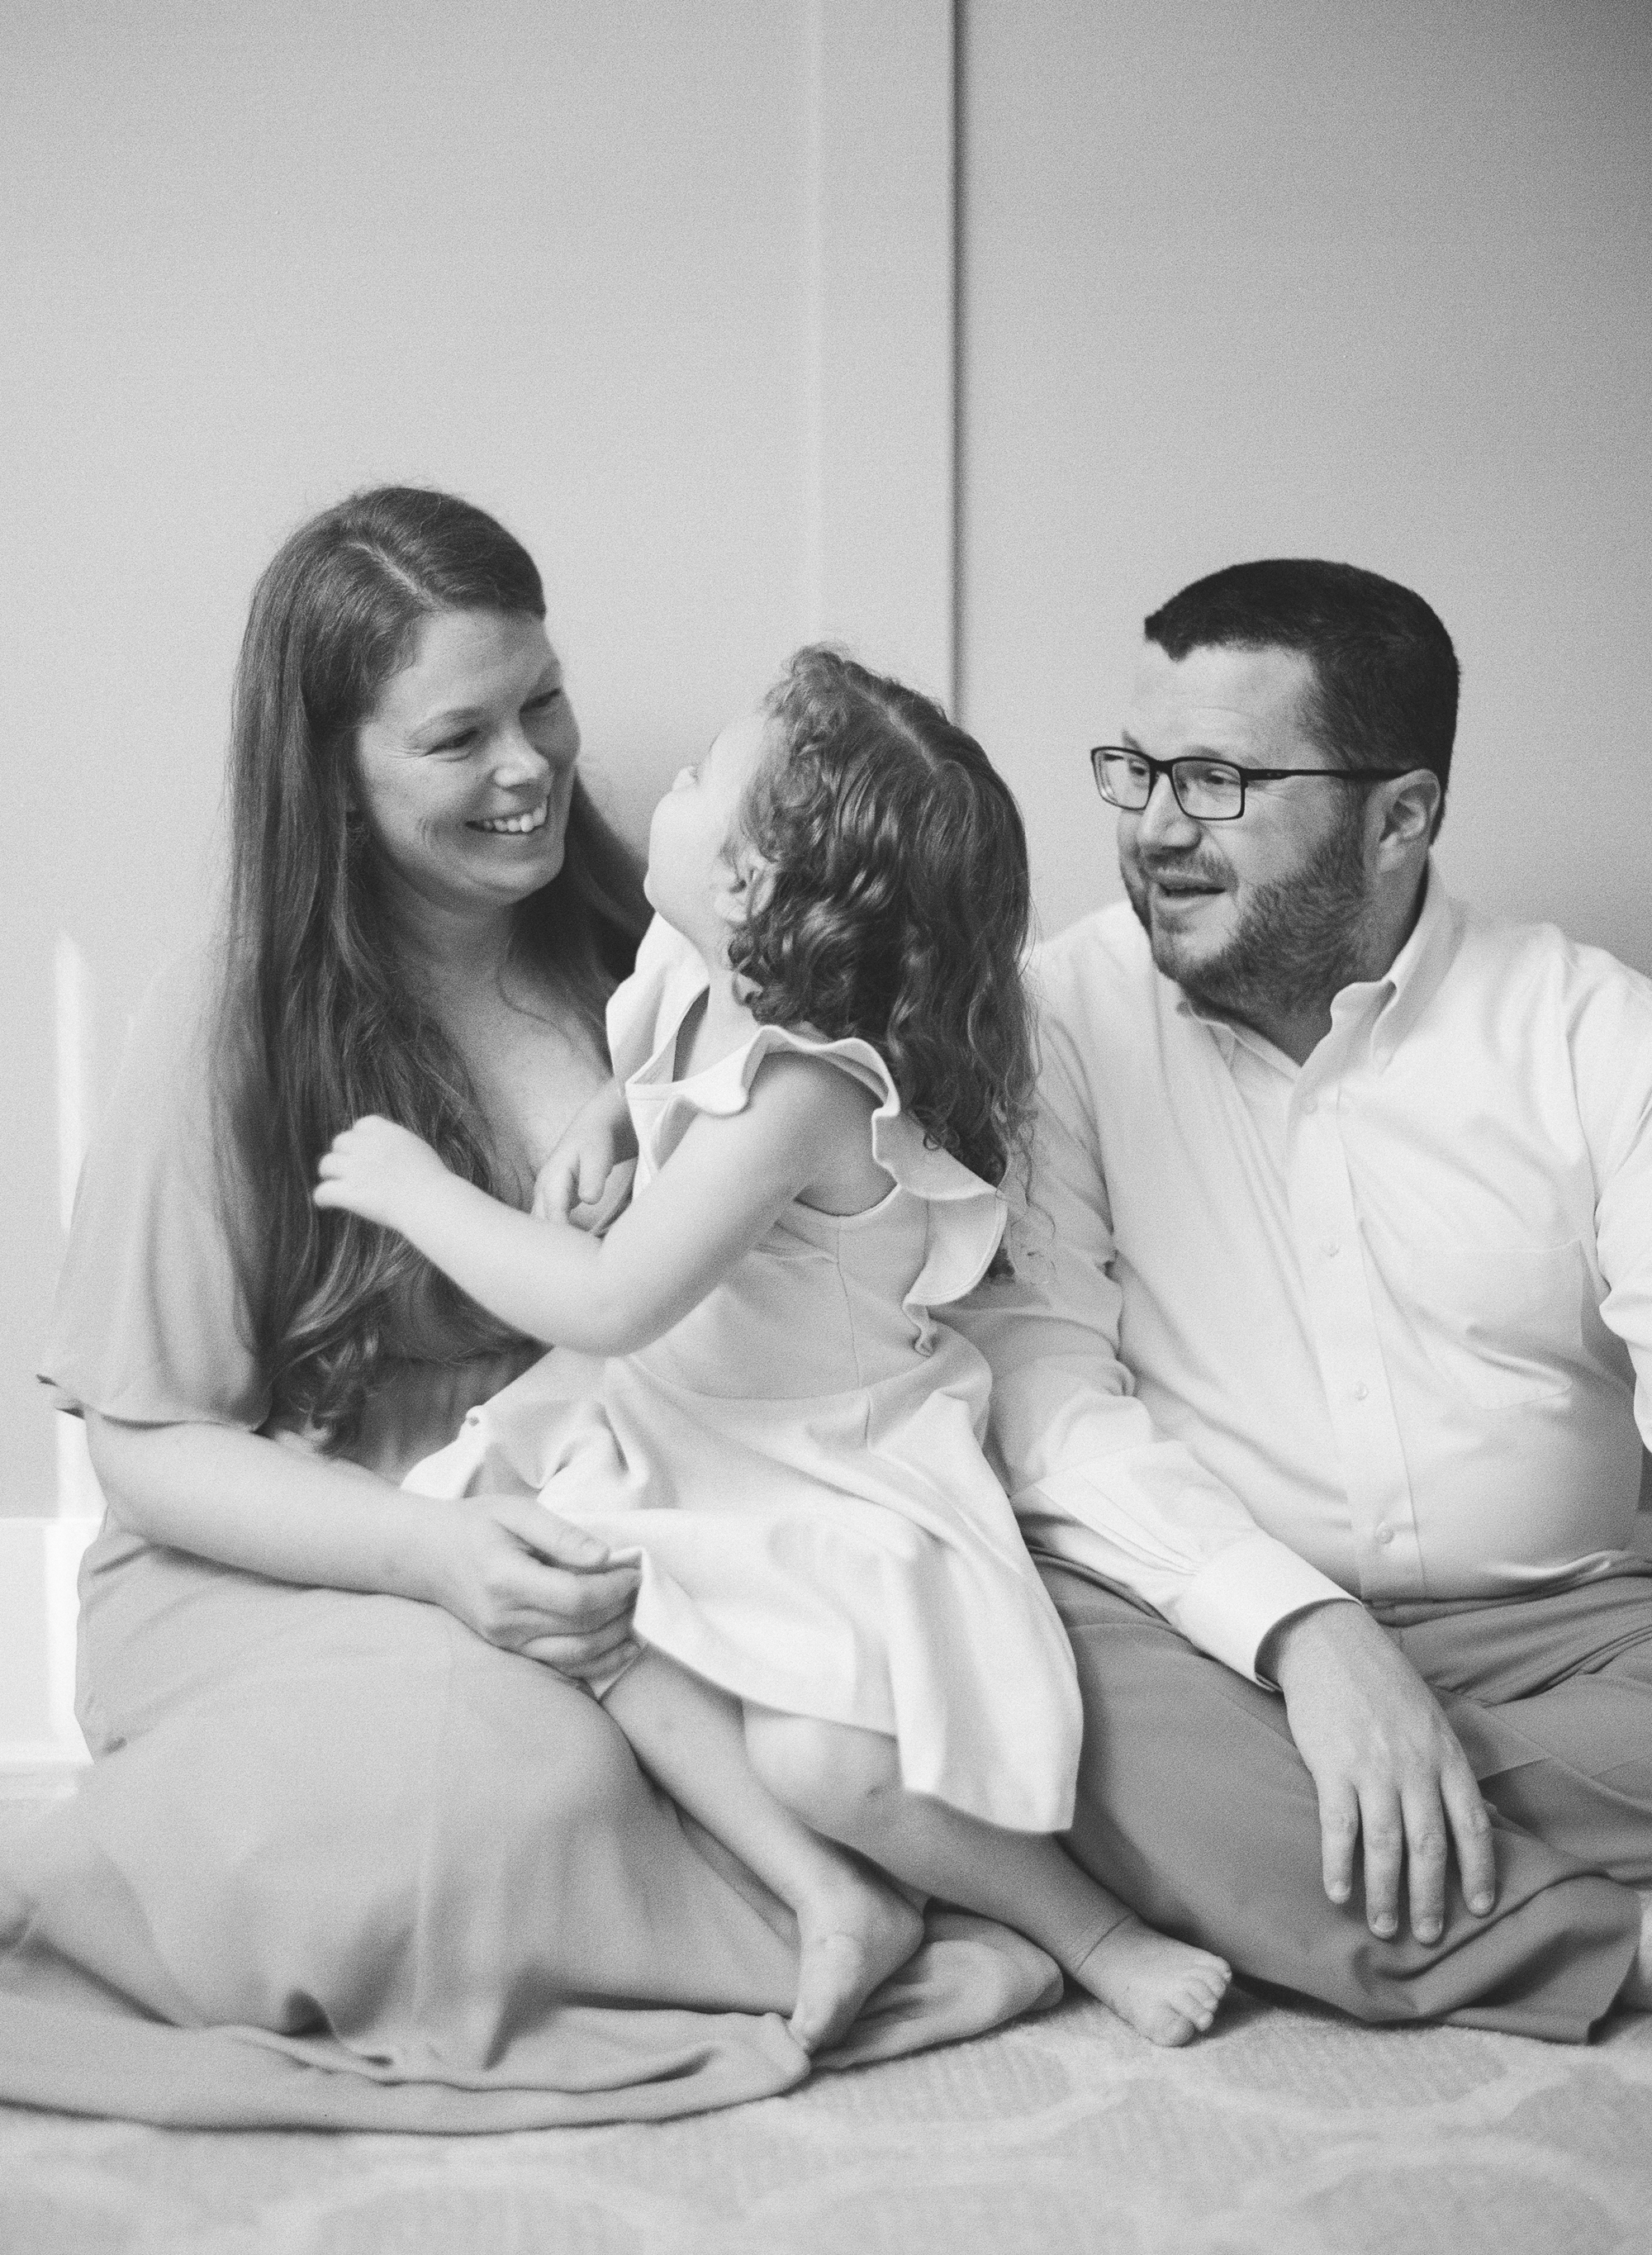 raleigh-lifestyle-family-film-photography-kids-004